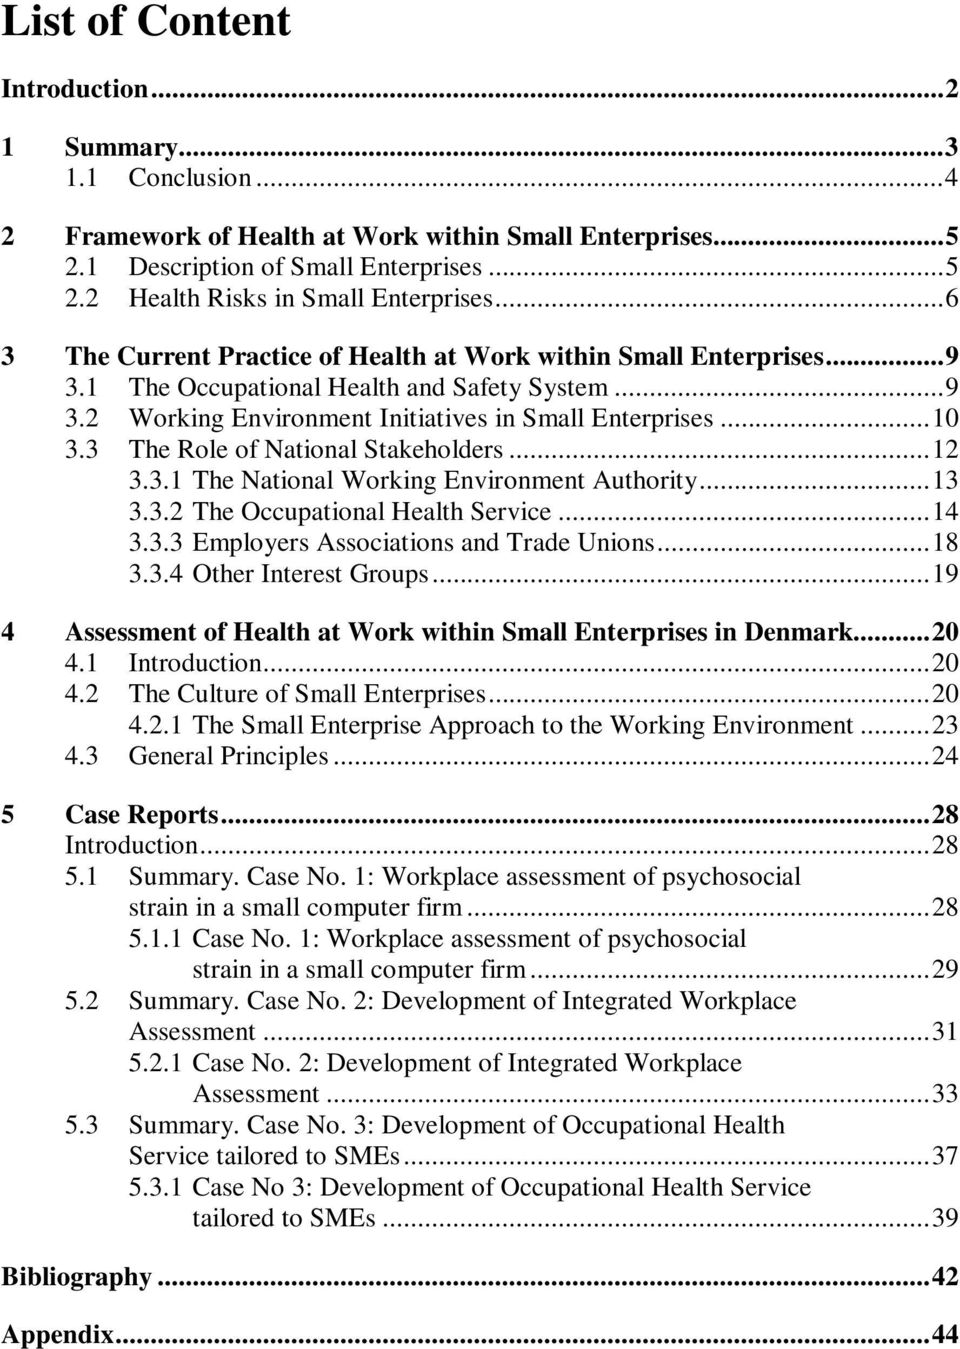 3 The Role of National Stakeholders...12 3.3.1 The National Working Environment Authority...13 3.3.2 The Occupational Health Service...14 3.3.3 Employers Associations and Trade Unions...18 3.3.4 Other Interest Groups.